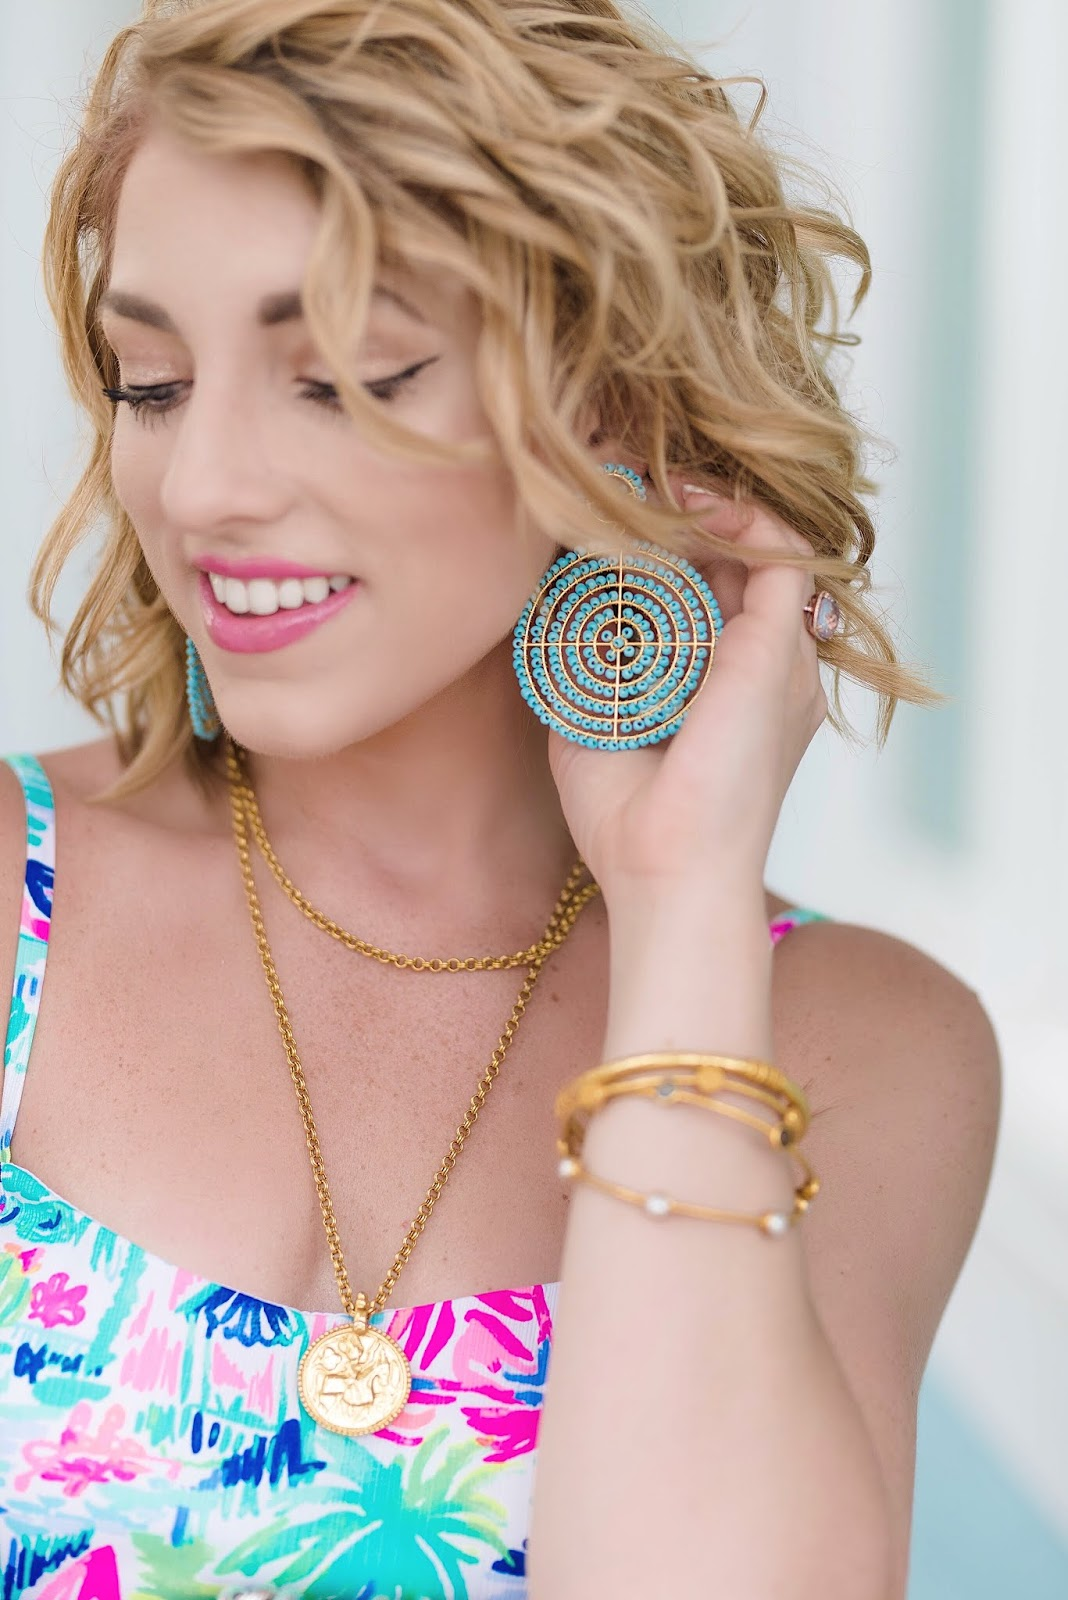 Lisi Lerch Turquoise Disk Earrings in Turquoise - Something Delightful Blog